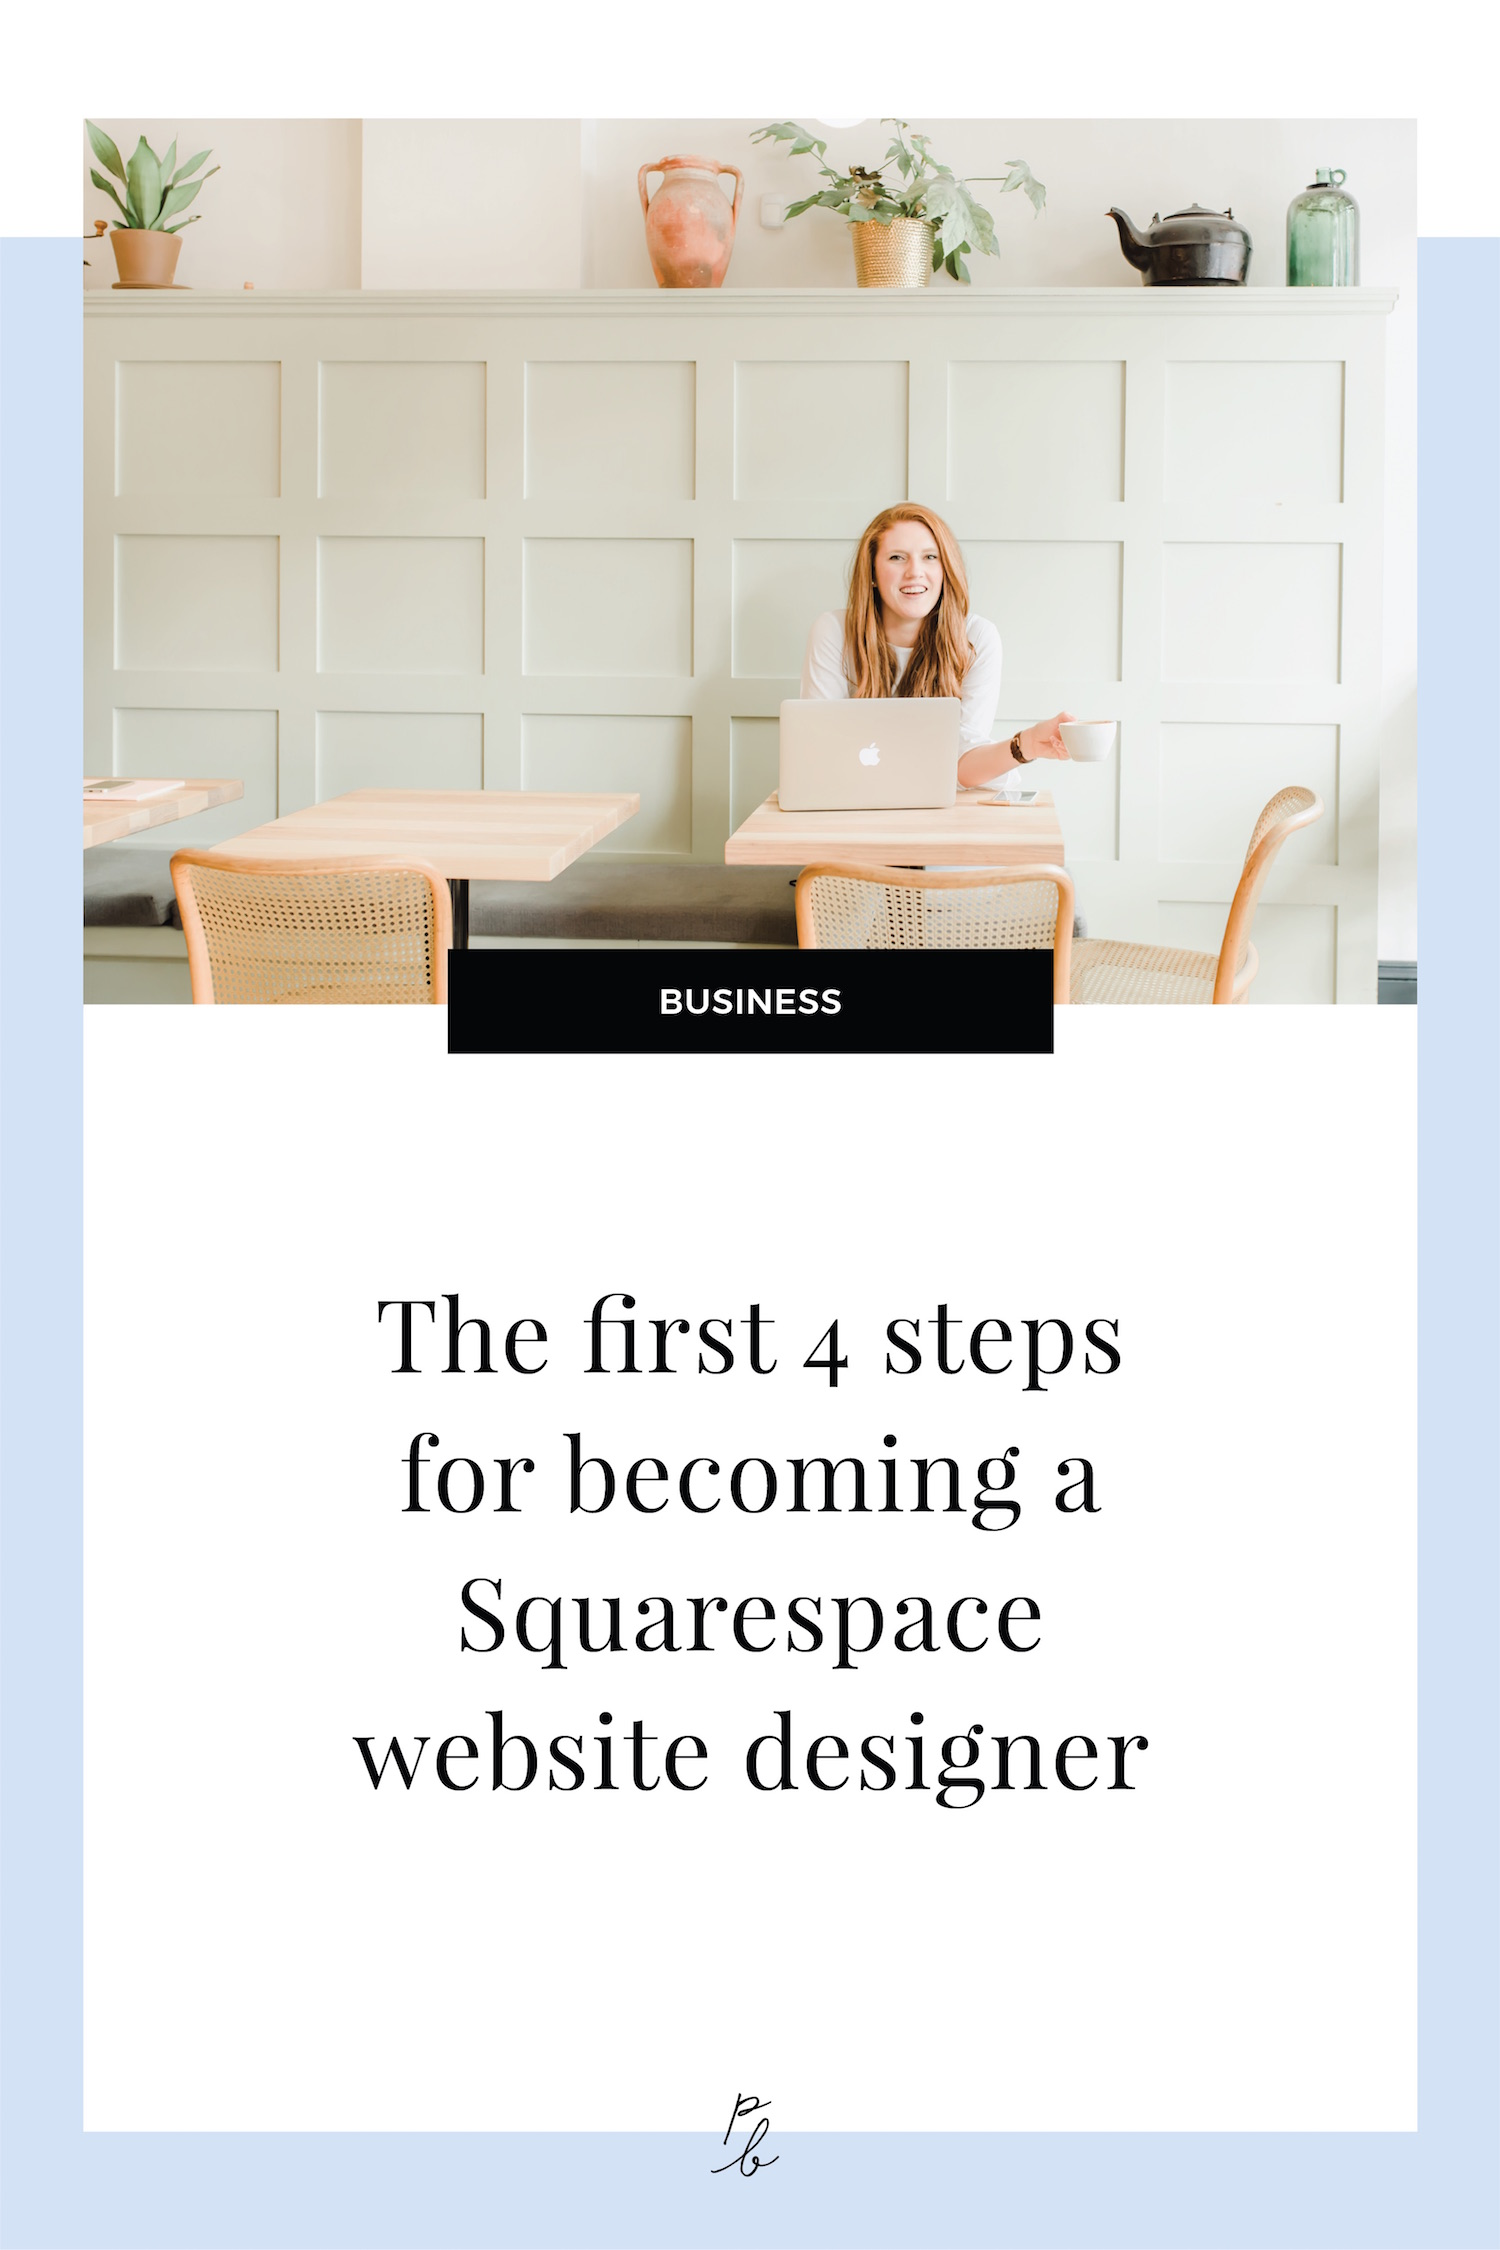 The first 4 steps for becoming a Squarespace website designer.jpg